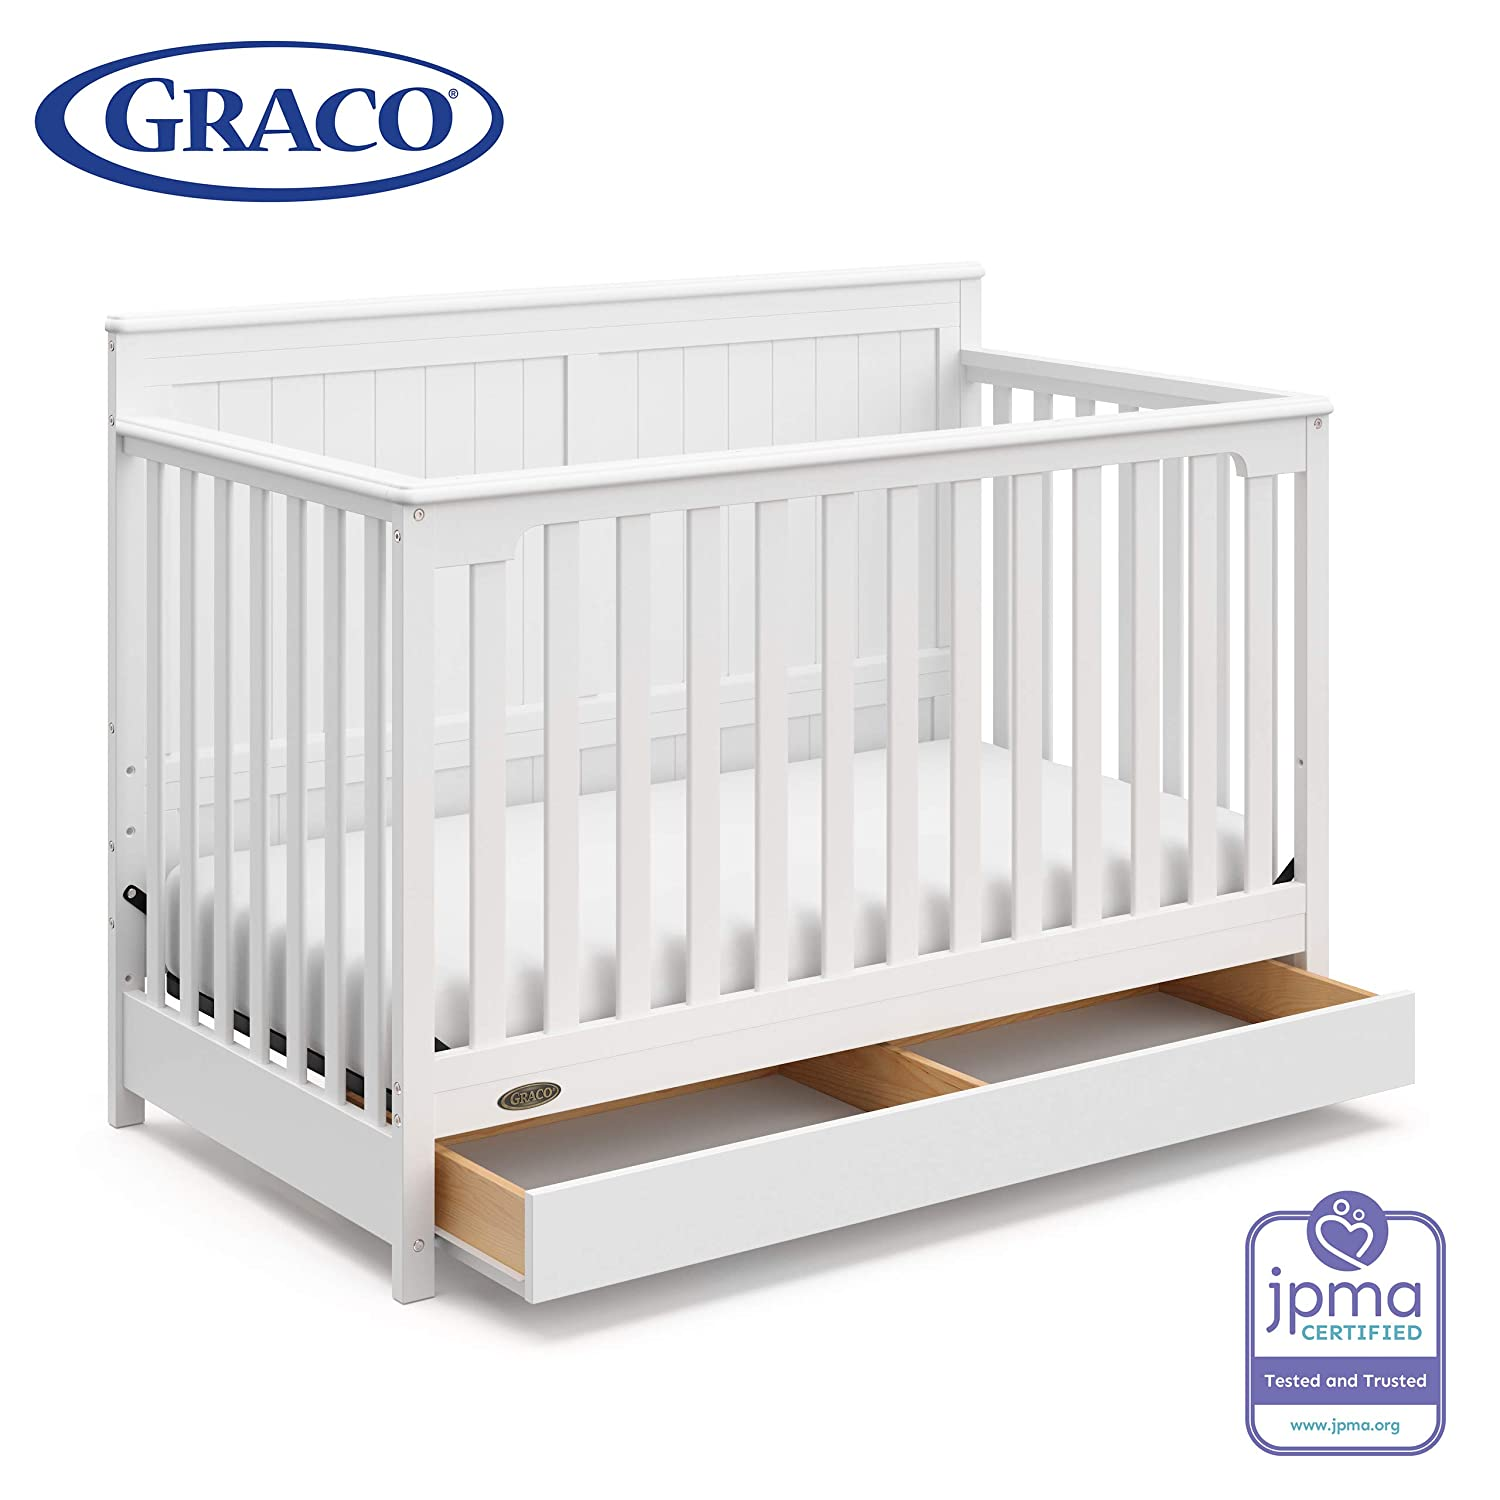 Graco Hadley 4-in-1 Convertible Crib with Drawer, White, Easily Converts to Toddler Bed Day Bed or Full Bed, Three Position Adjustable Height Mattress, Some Assembly Required Mattress Not Included